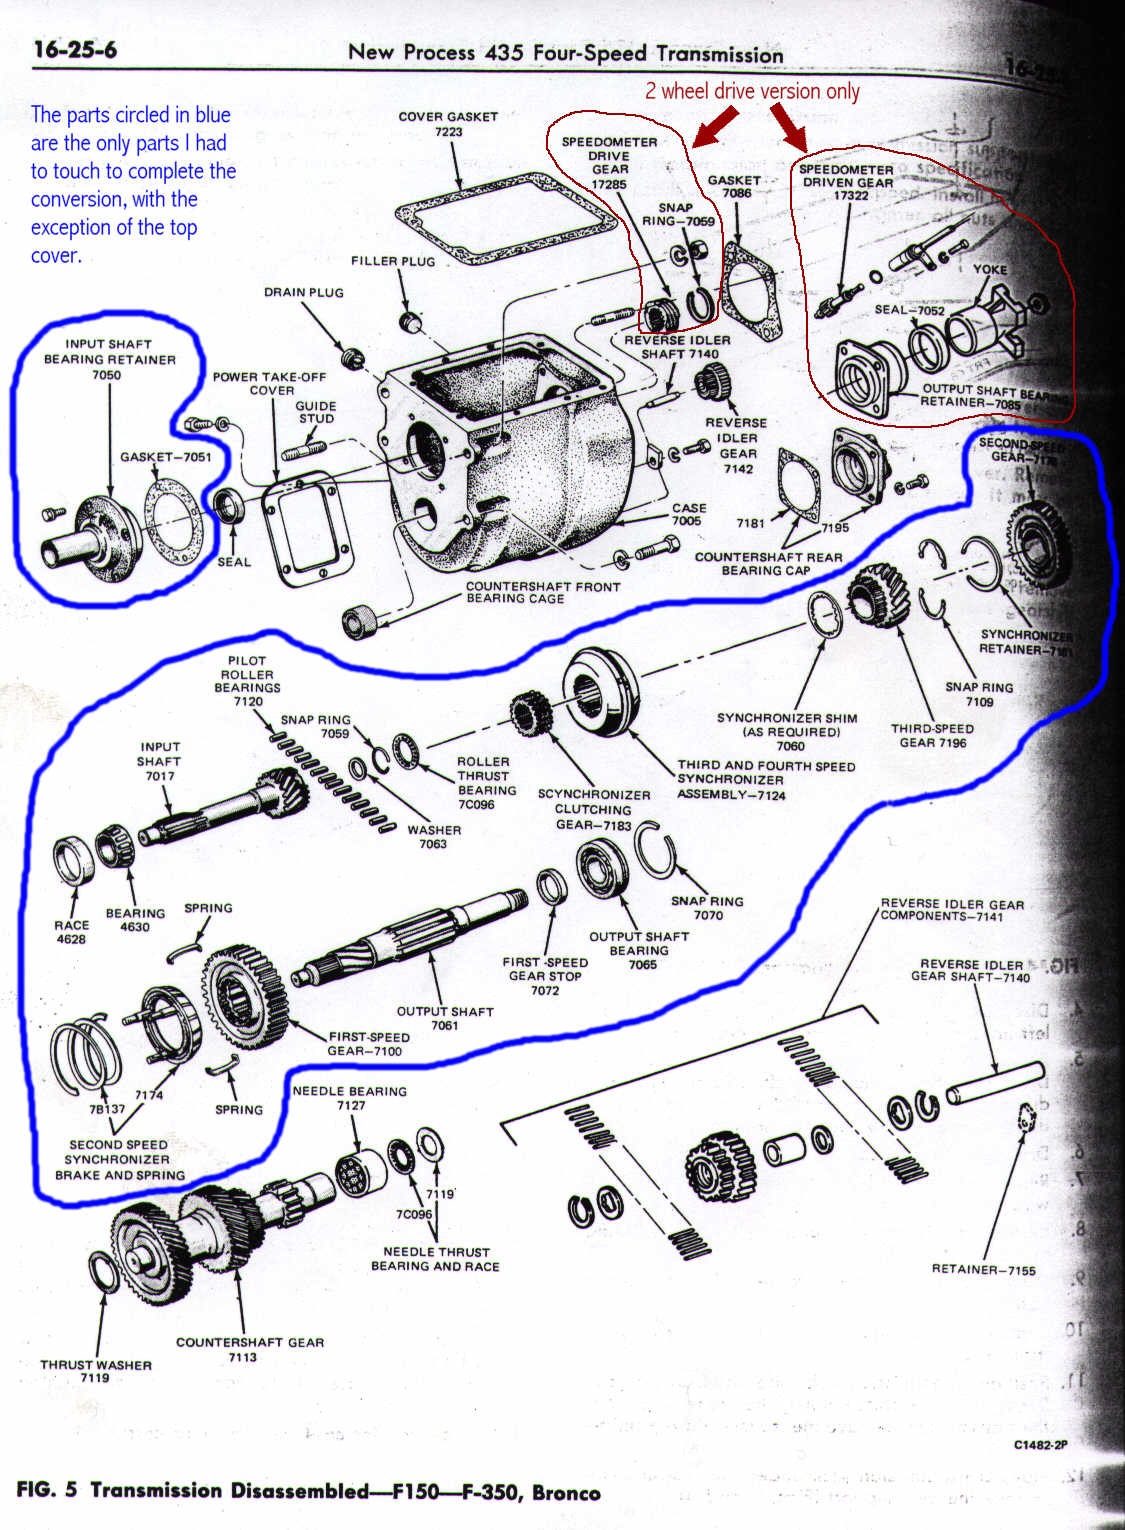 hight resolution of ford np435 diagram wiring diagram third level auto transmission diagram diagram of np435 wiring diagram todays